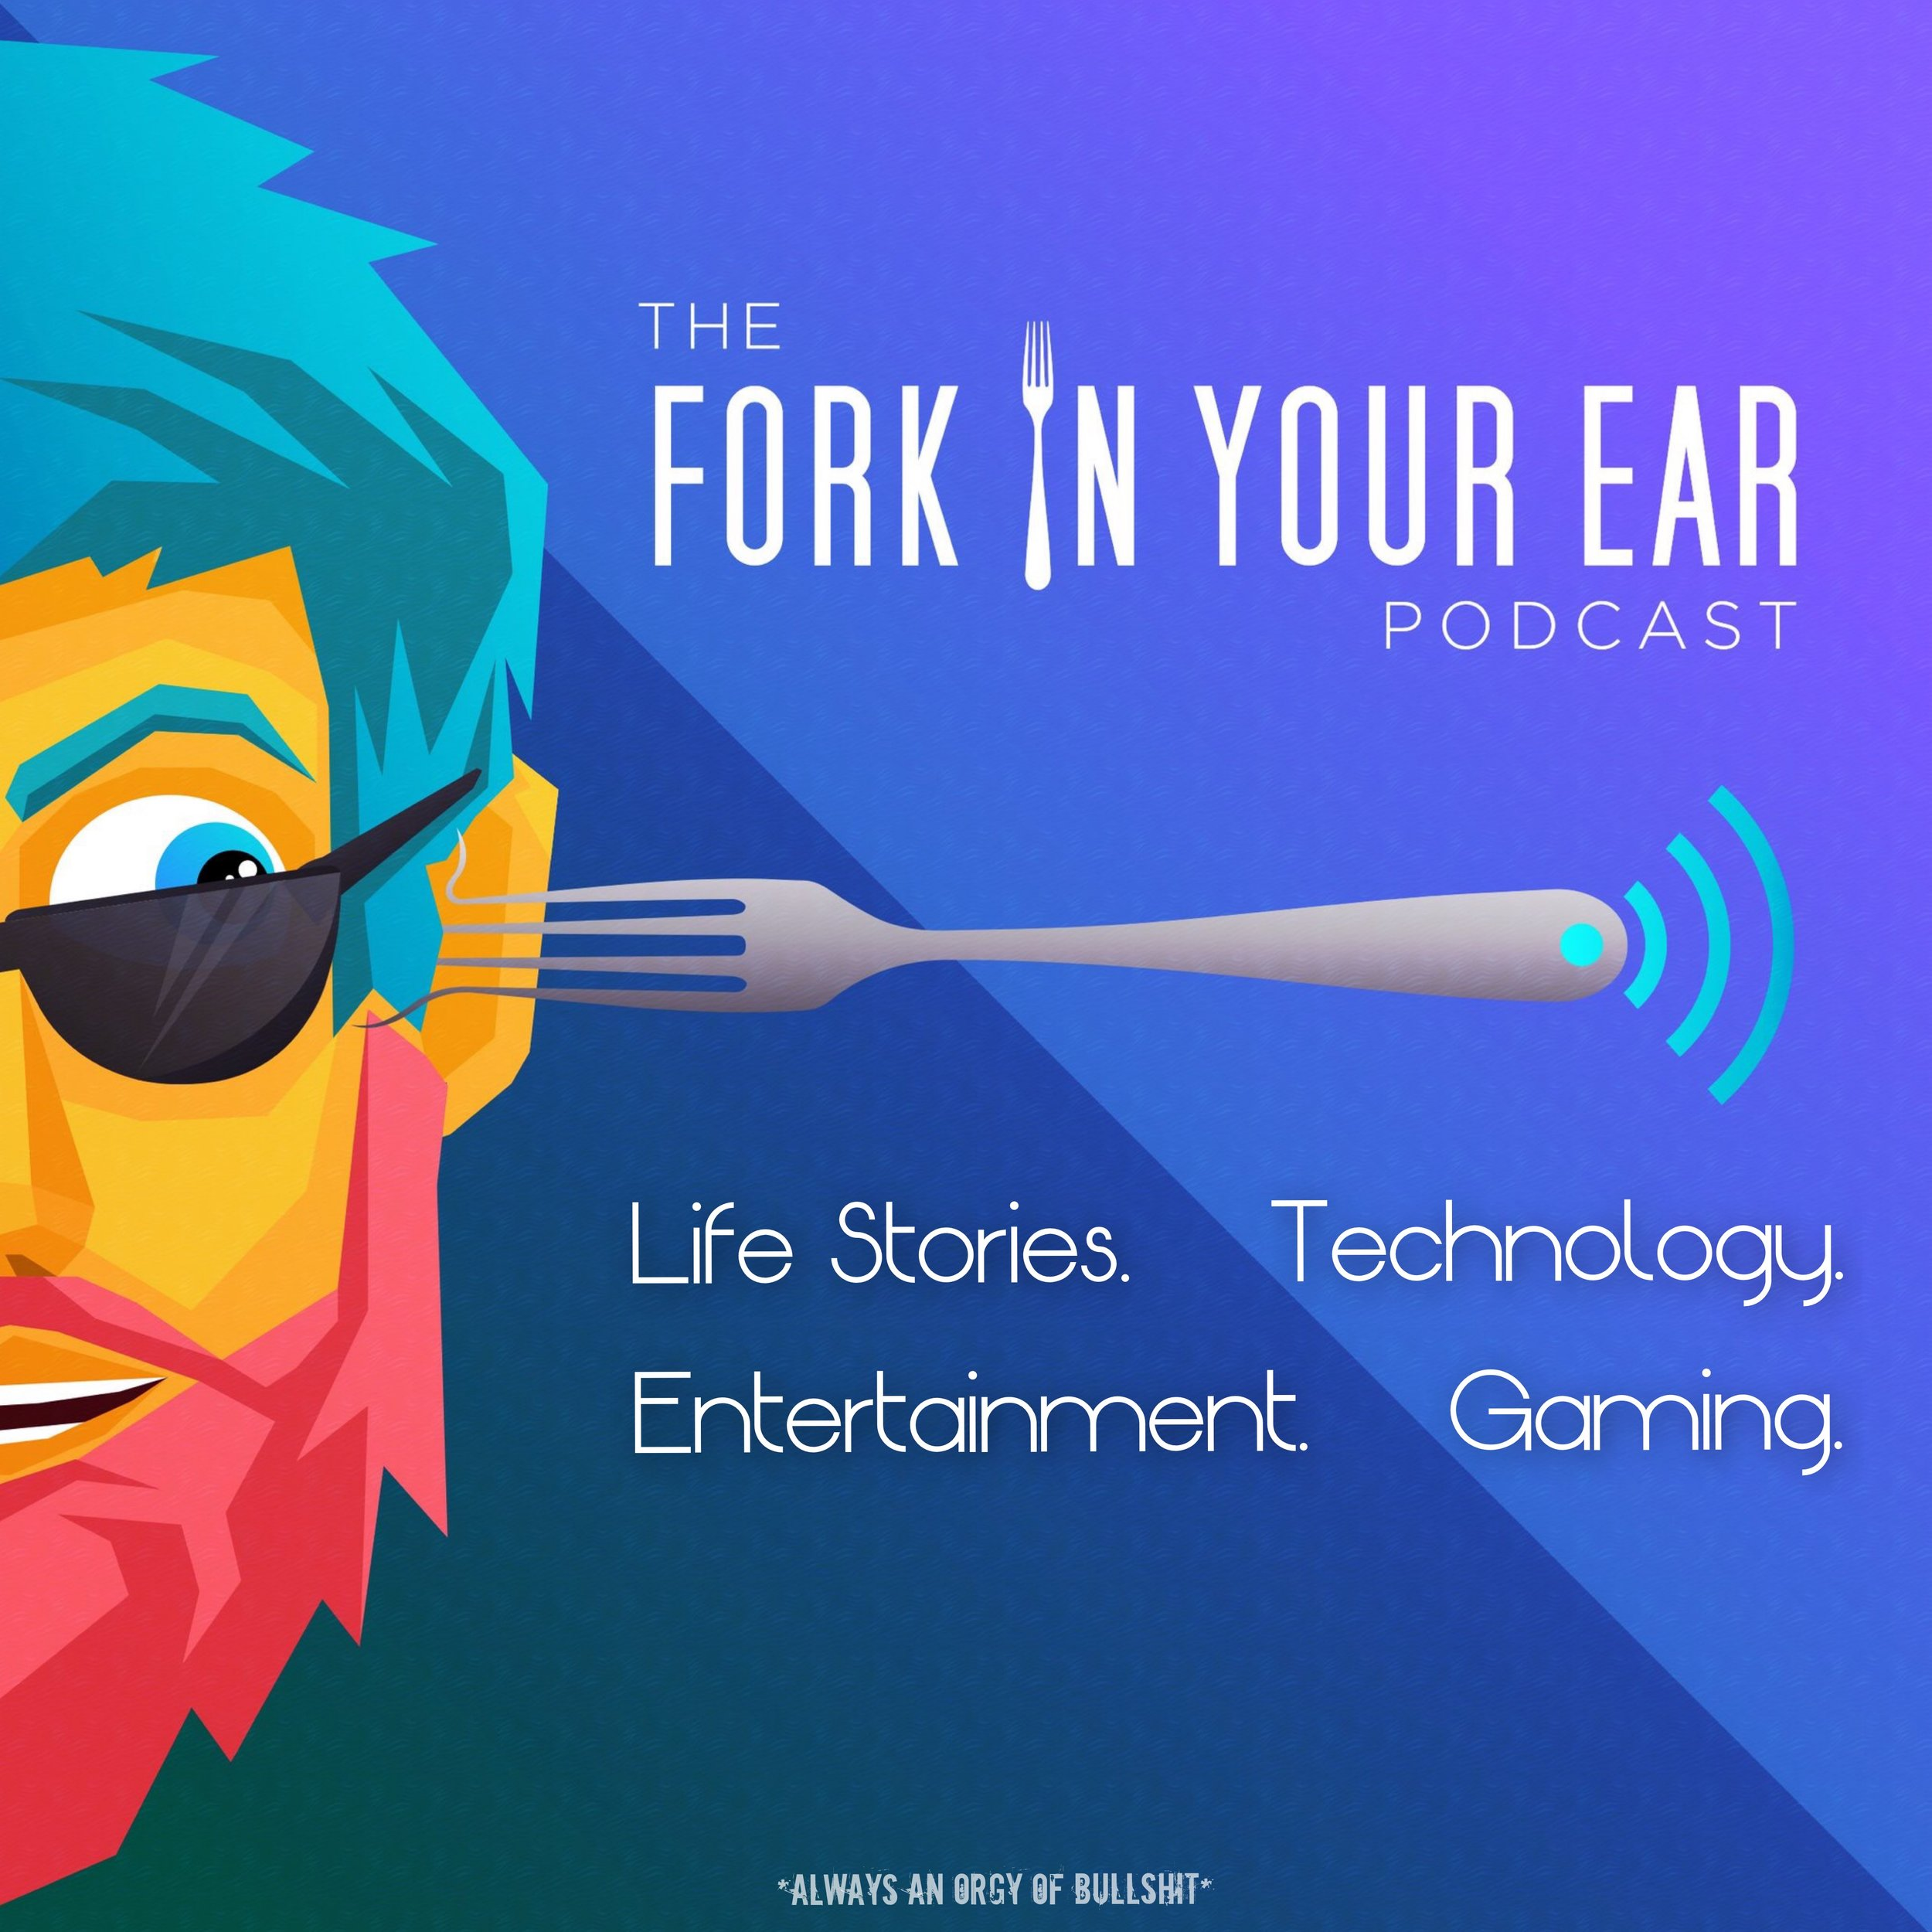 Join Host, Author, Podcaster, and Gamer Tim K.A. Trotter with his gaggle of co-hosts! Covering Life Stories, Entertainment, Technology & Gaming. The only rules are NO politics or religion! What will we each episode be about? Jump in and find out!!!